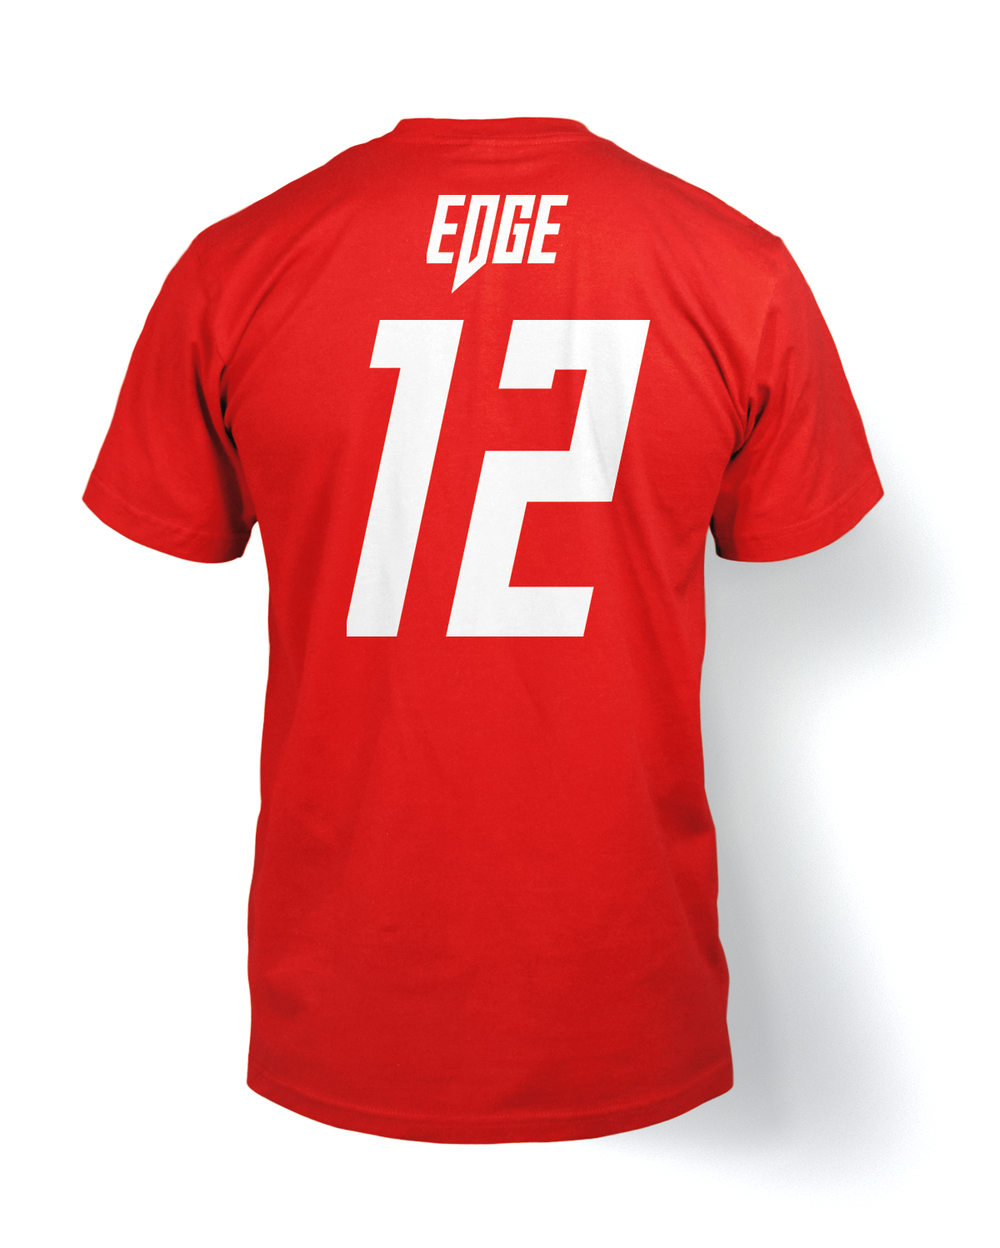 Edge-Jersey_Back.png